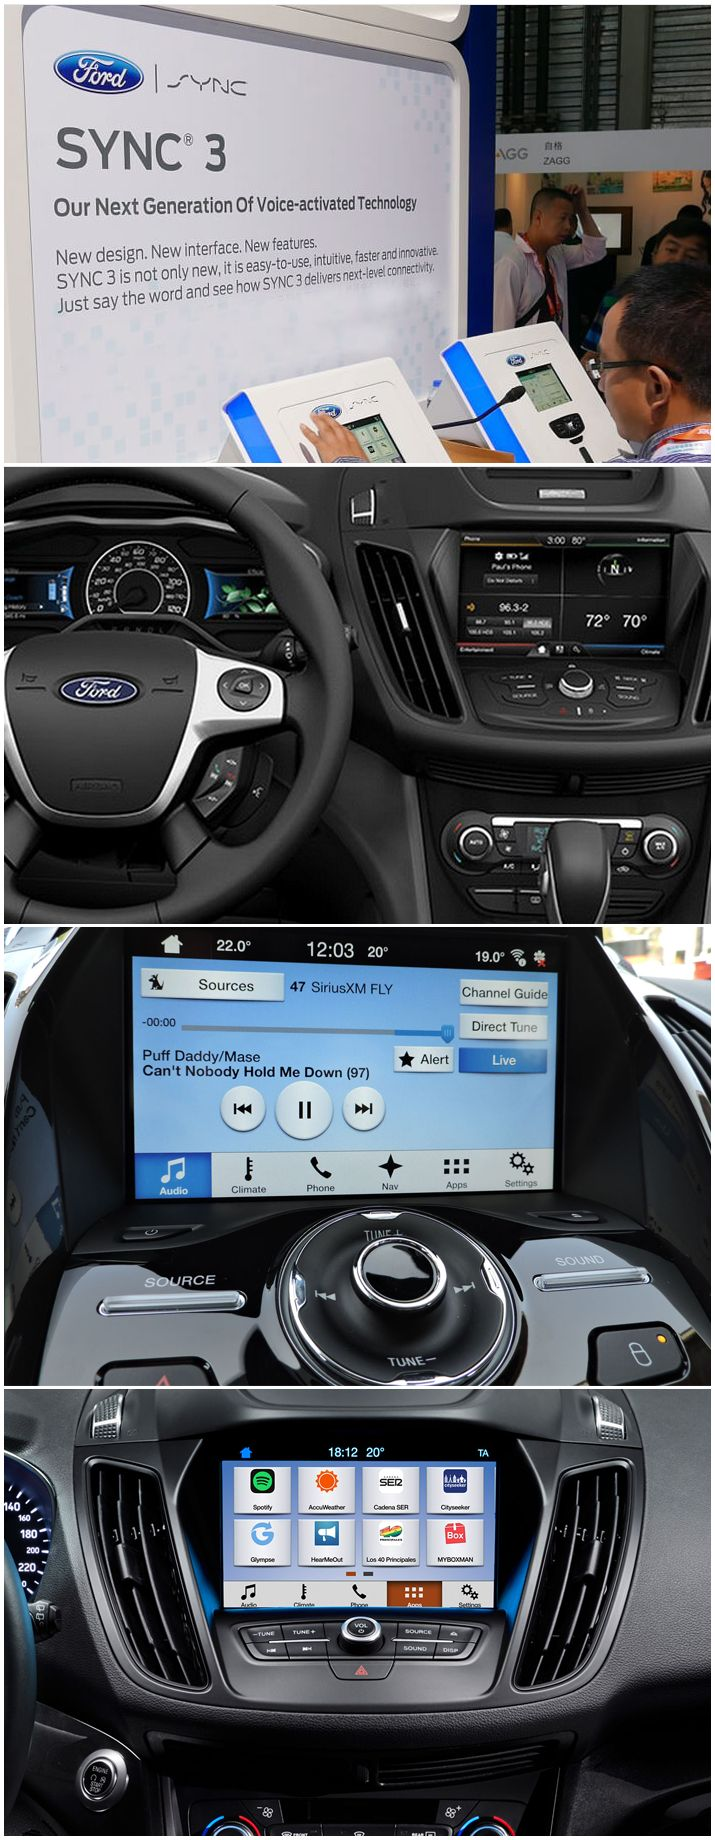 17 best ideas about ford sync on pinterest ios update. Black Bedroom Furniture Sets. Home Design Ideas